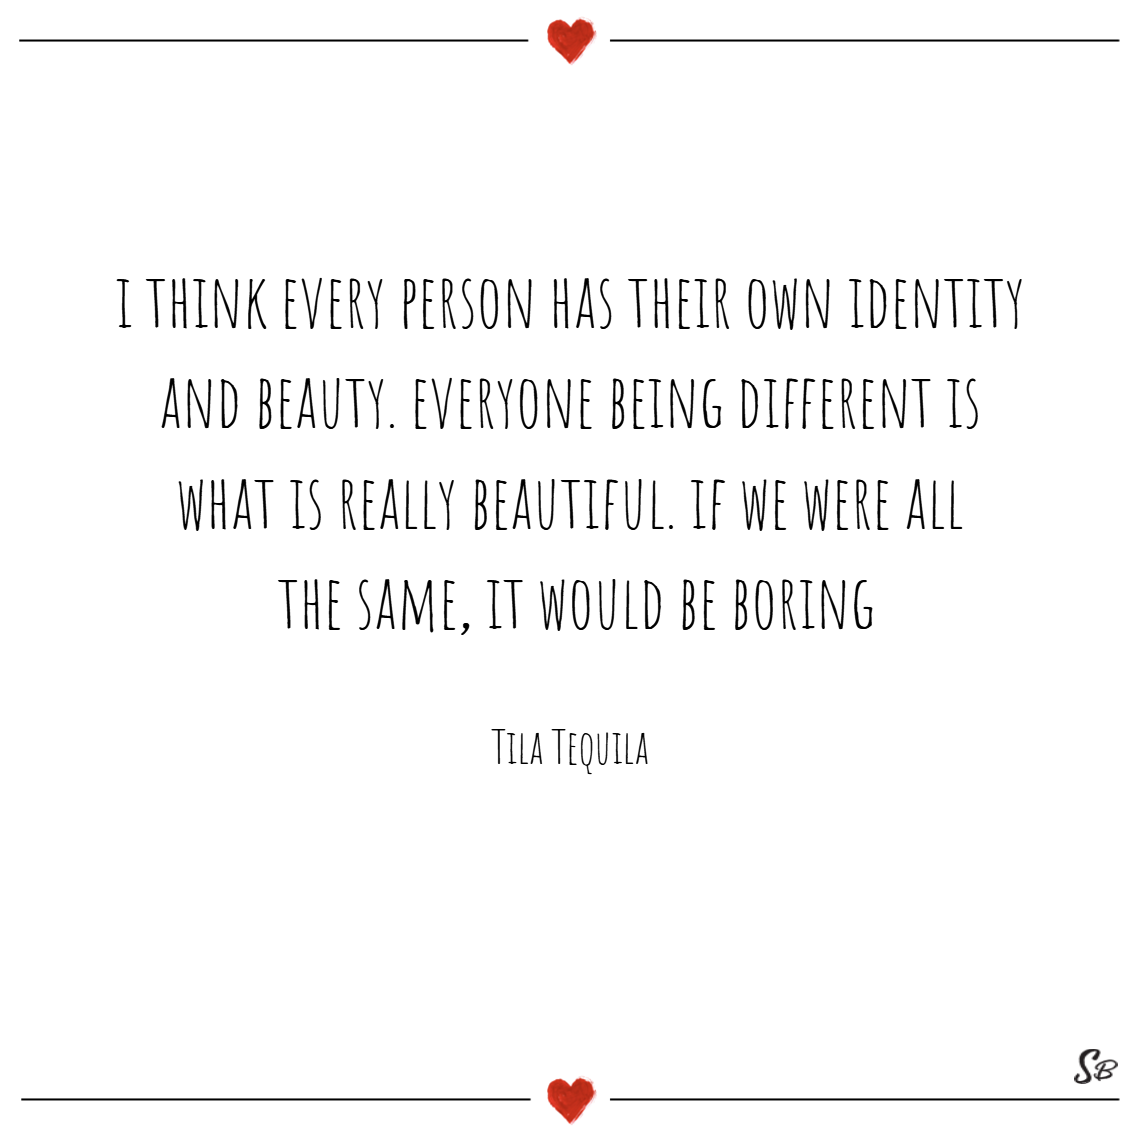 I think every person has their own identity and beauty. everyone being different is what is really beautiful. if we were all the same, it would be boring. – tila tequila